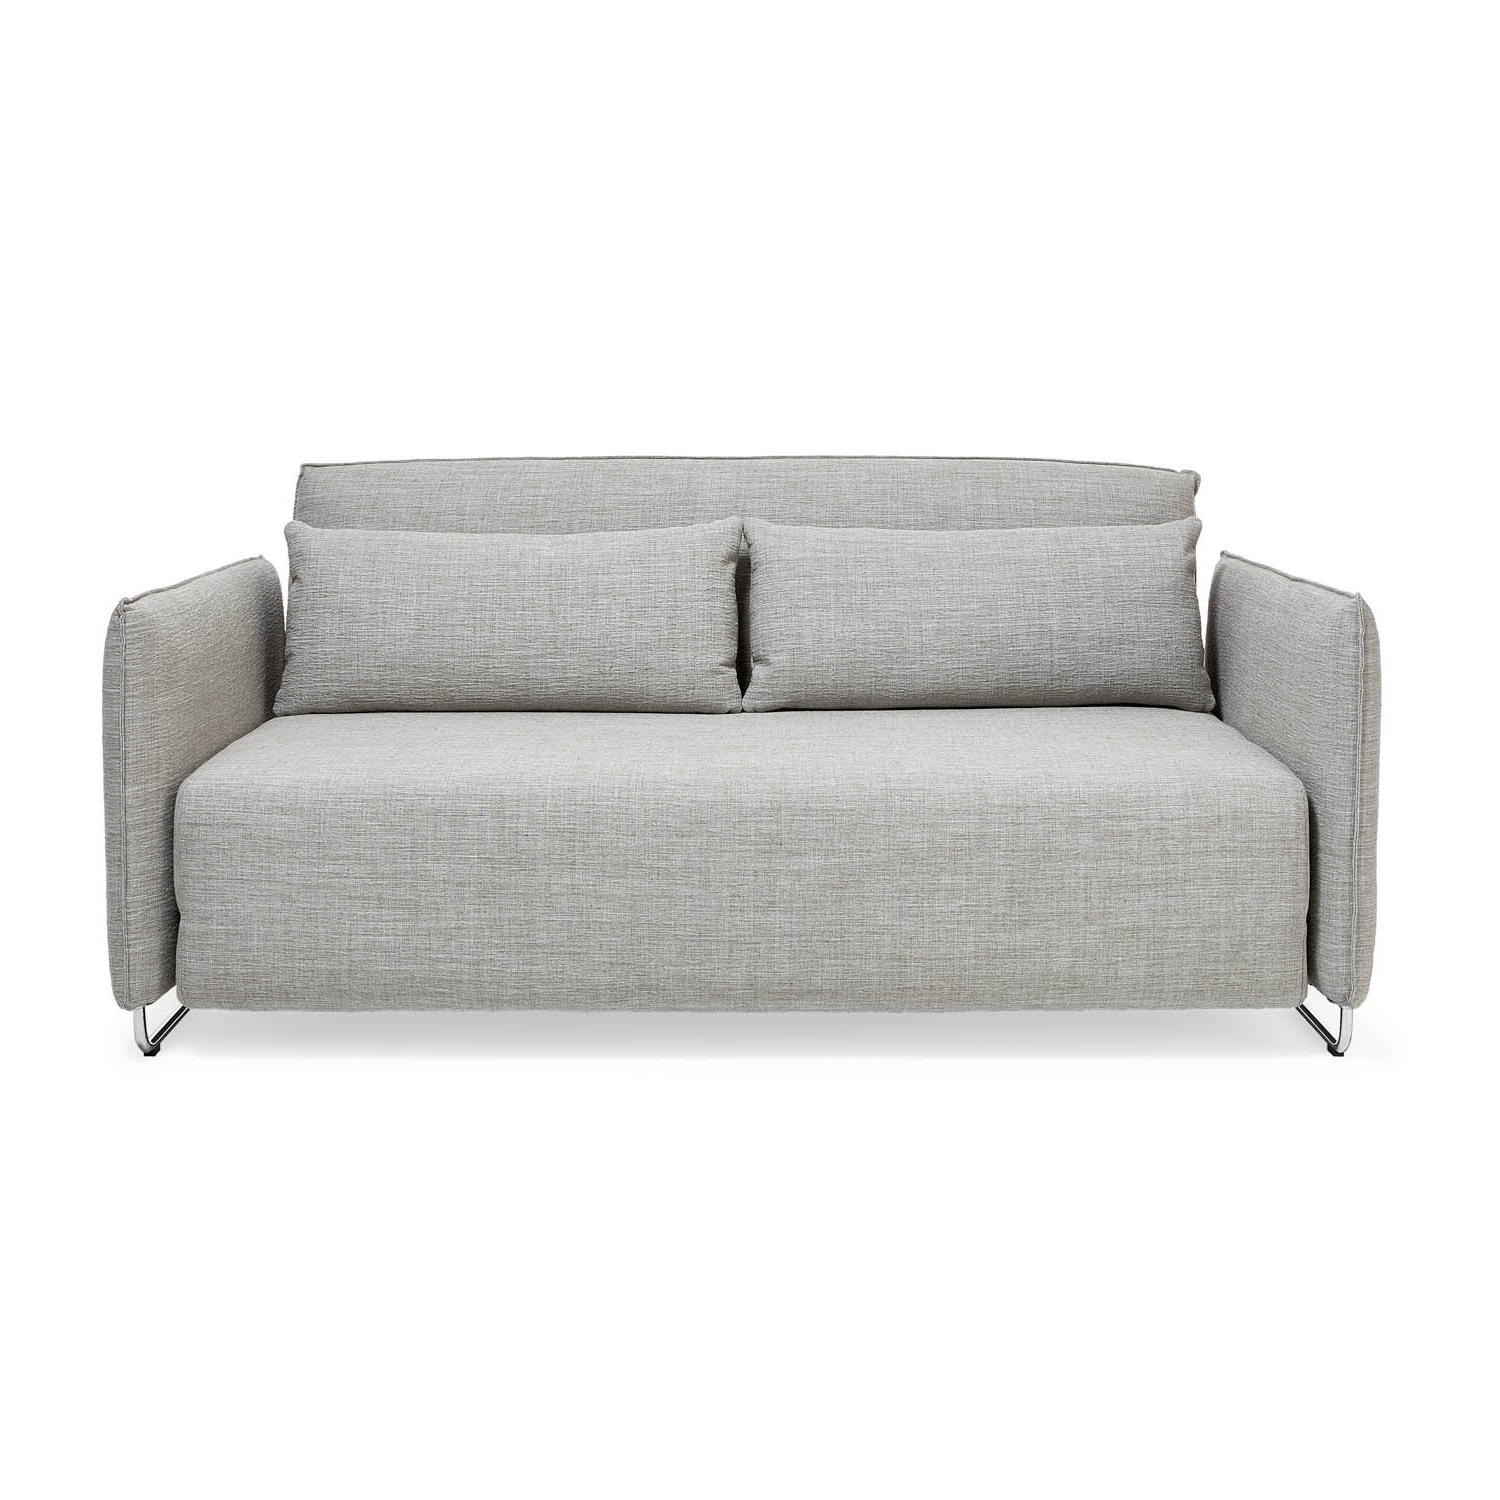 Most Up To Date Quincy Il Sectional Sofas Regarding Furniture : Mattress Firm Quincy Il Mattress Firm Mattress (View 18 of 20)